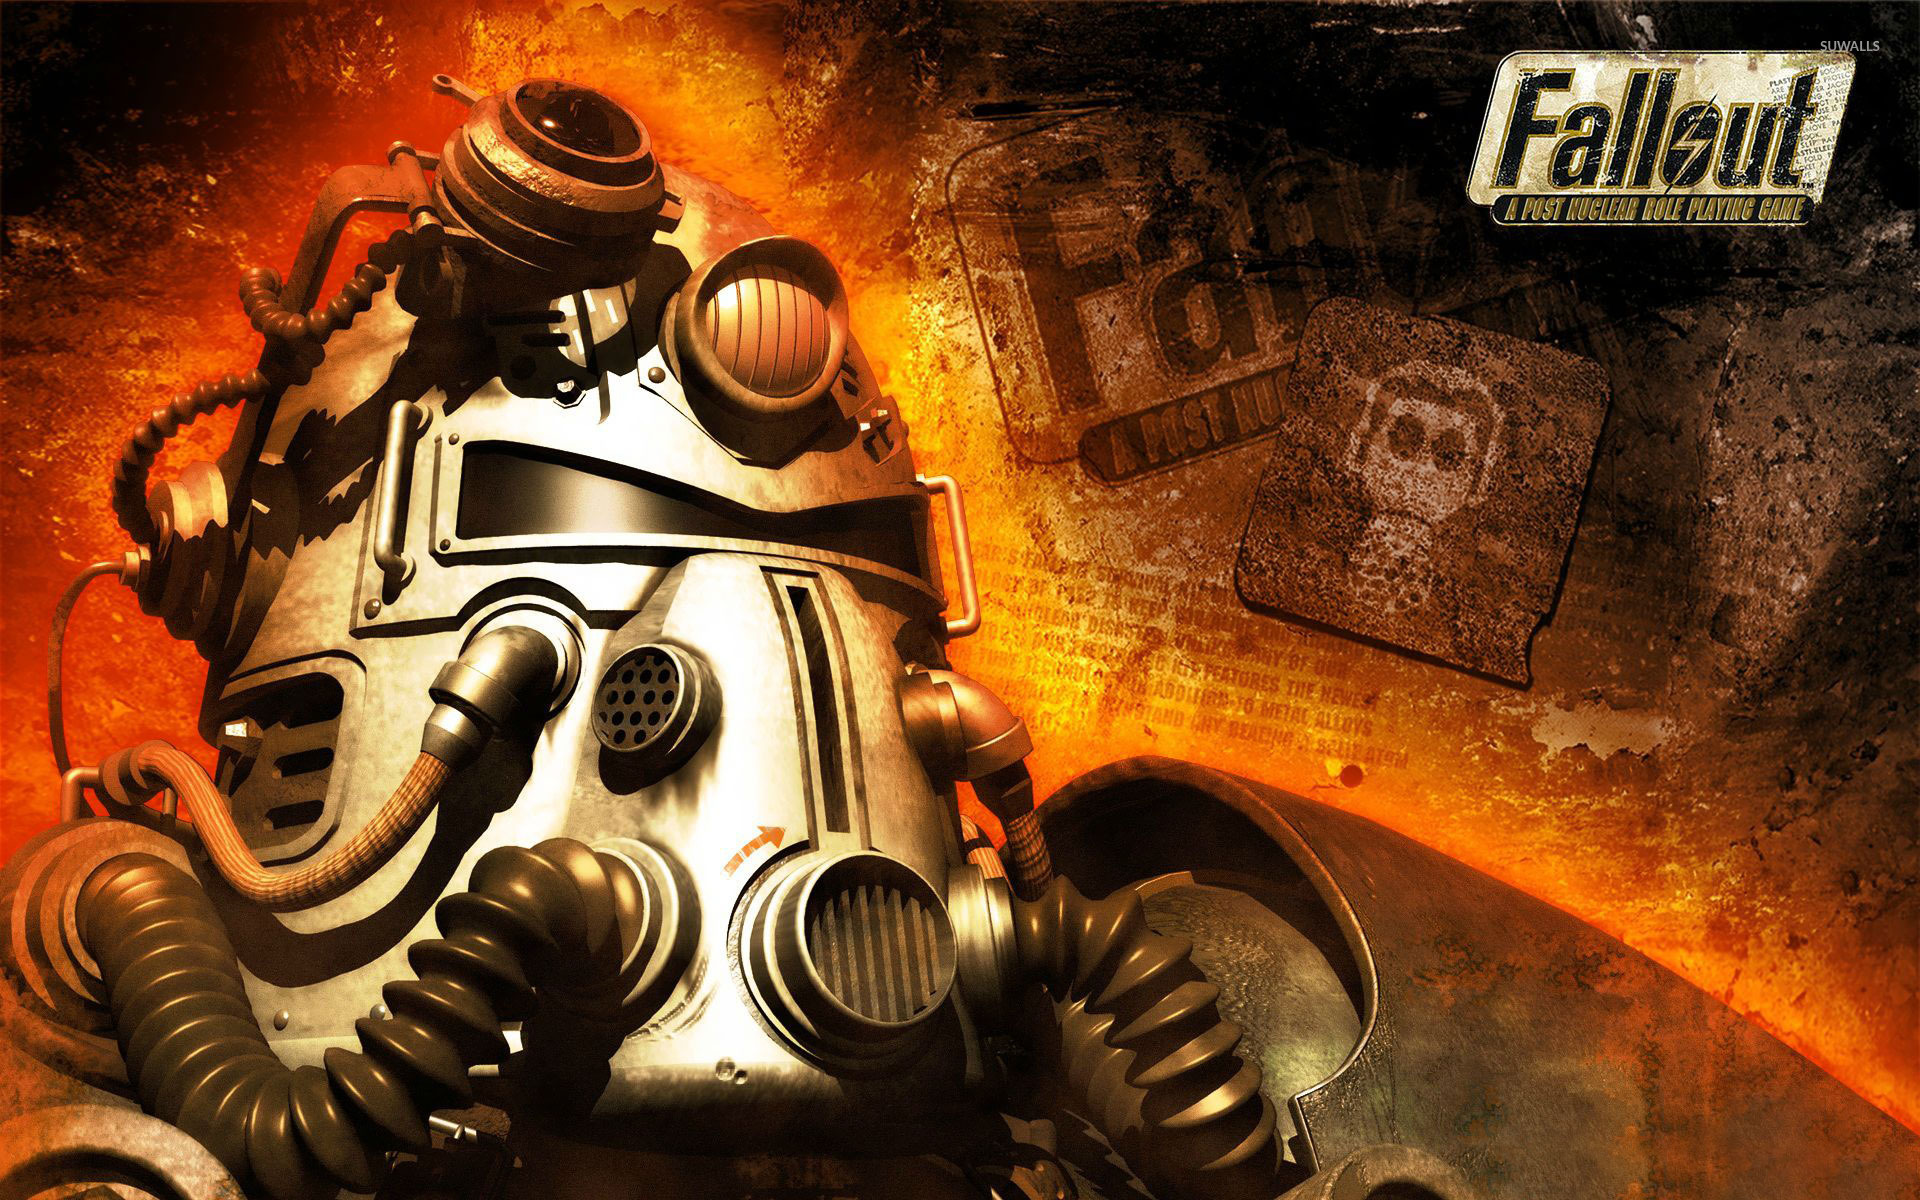 Постер Fallout: A Post Nuclear Role Playing Game